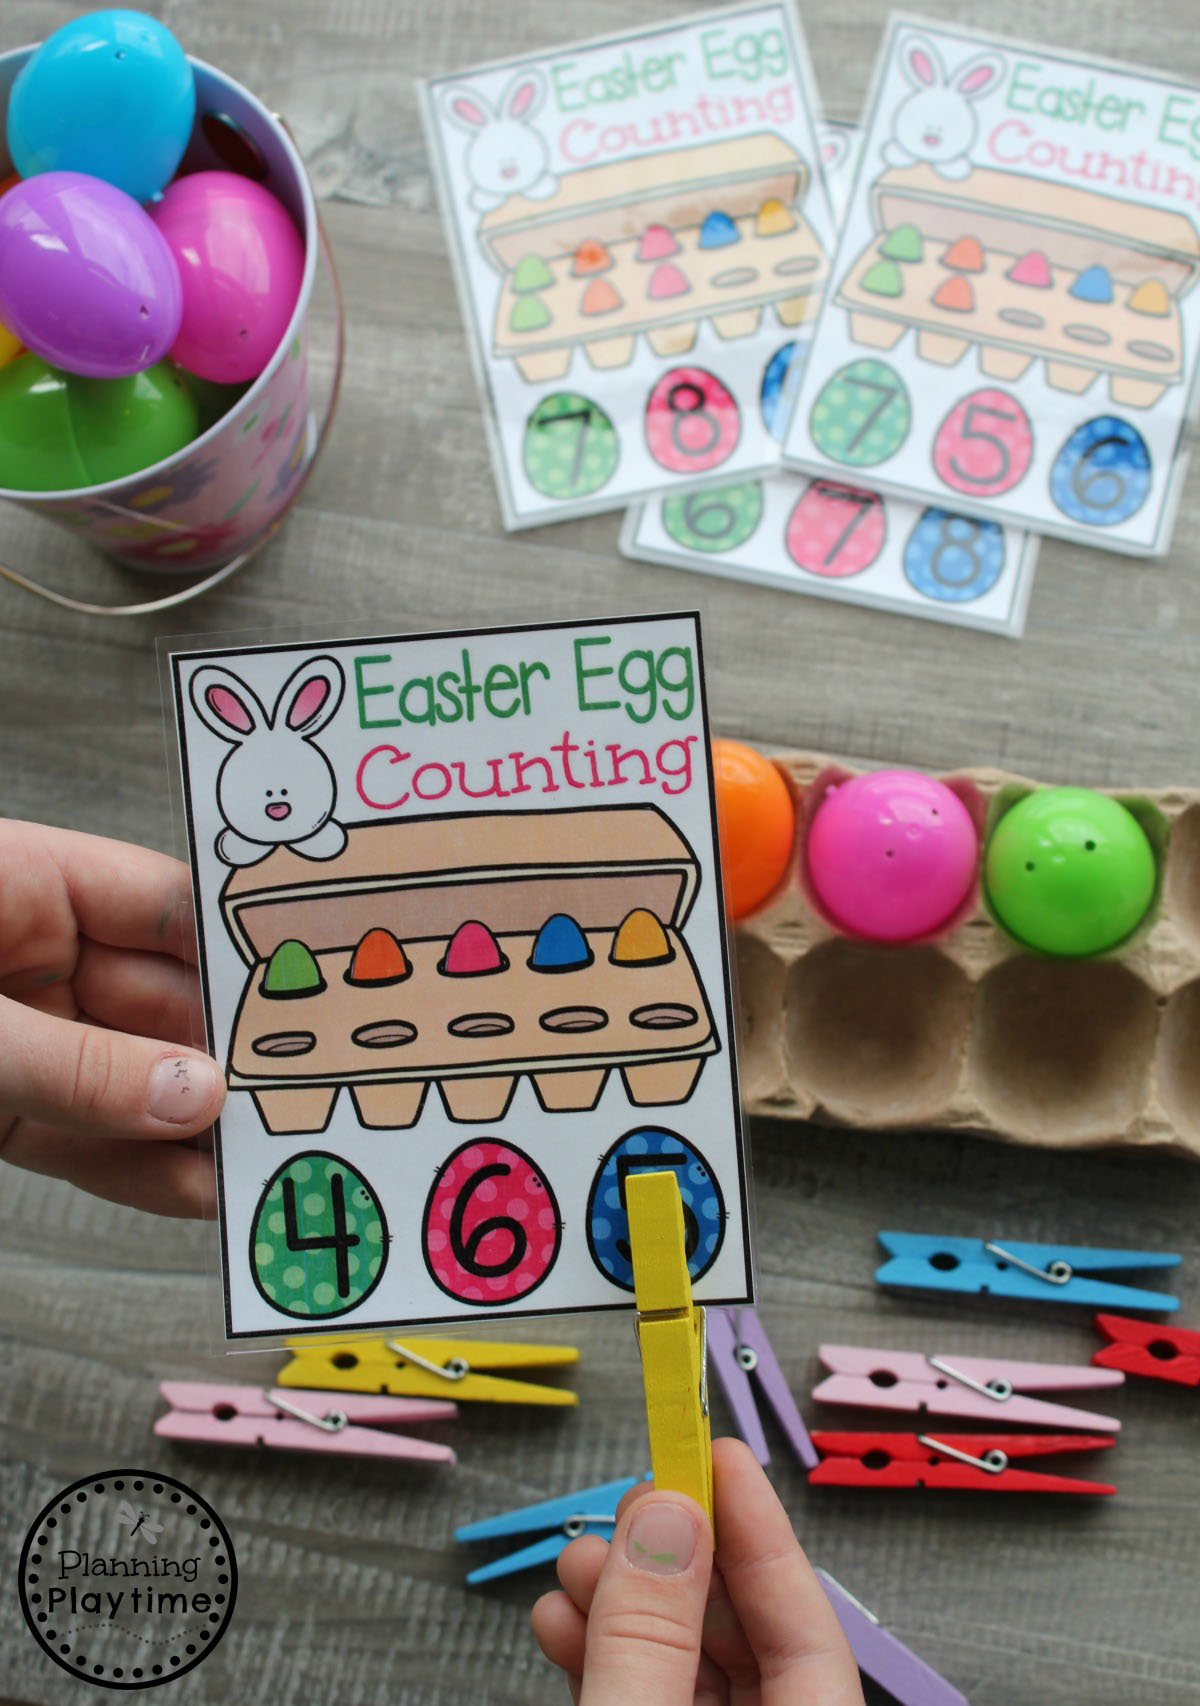 Preschool Counting Game for Easter. So fun! #easter #preschool #easteractivities #easterpreschool #planningplaytime #mathworksheets #counting